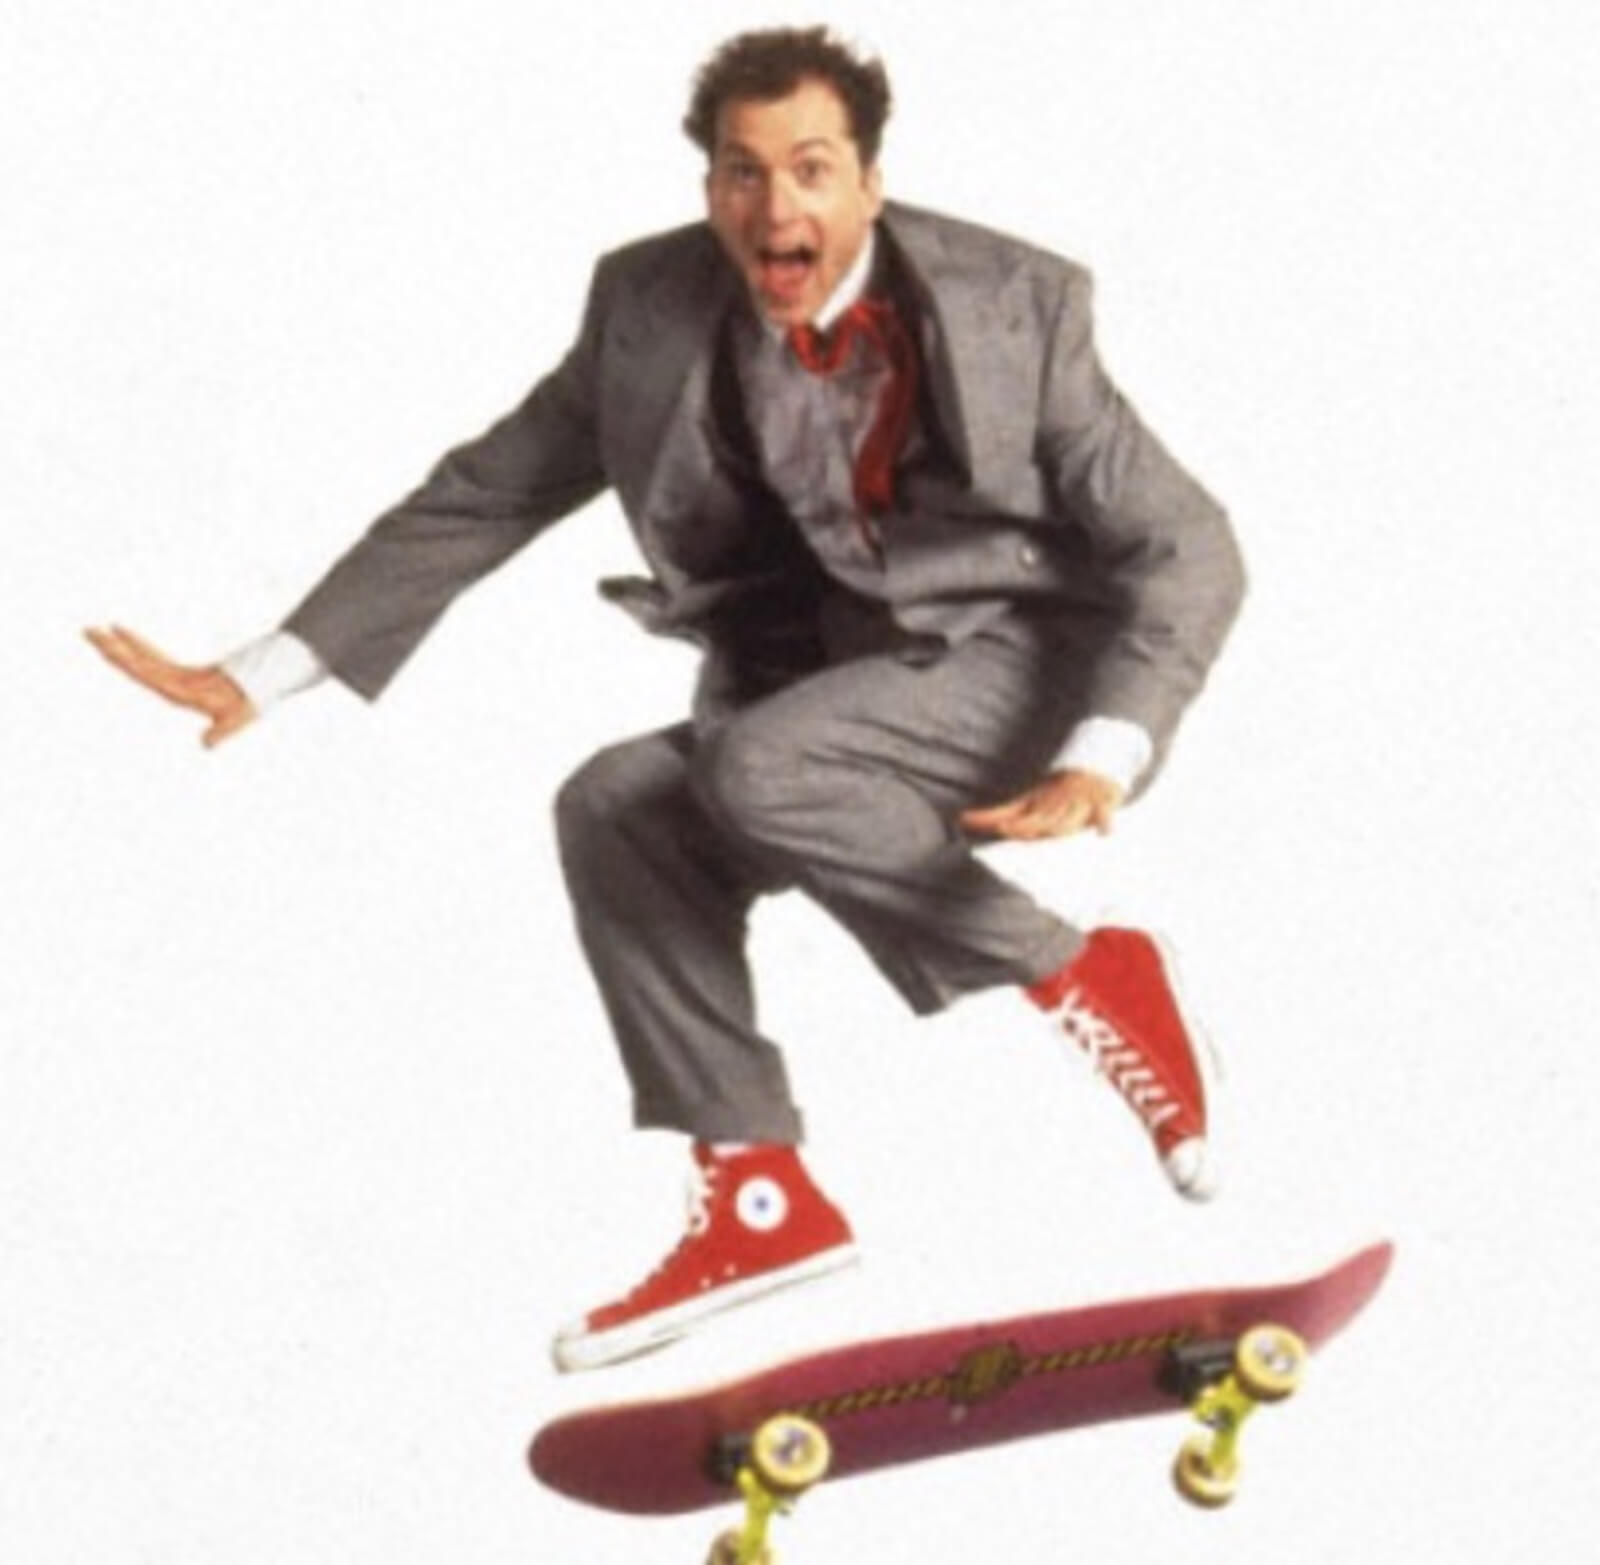 Daniel Jenkins in Big The Musical with a skateboard